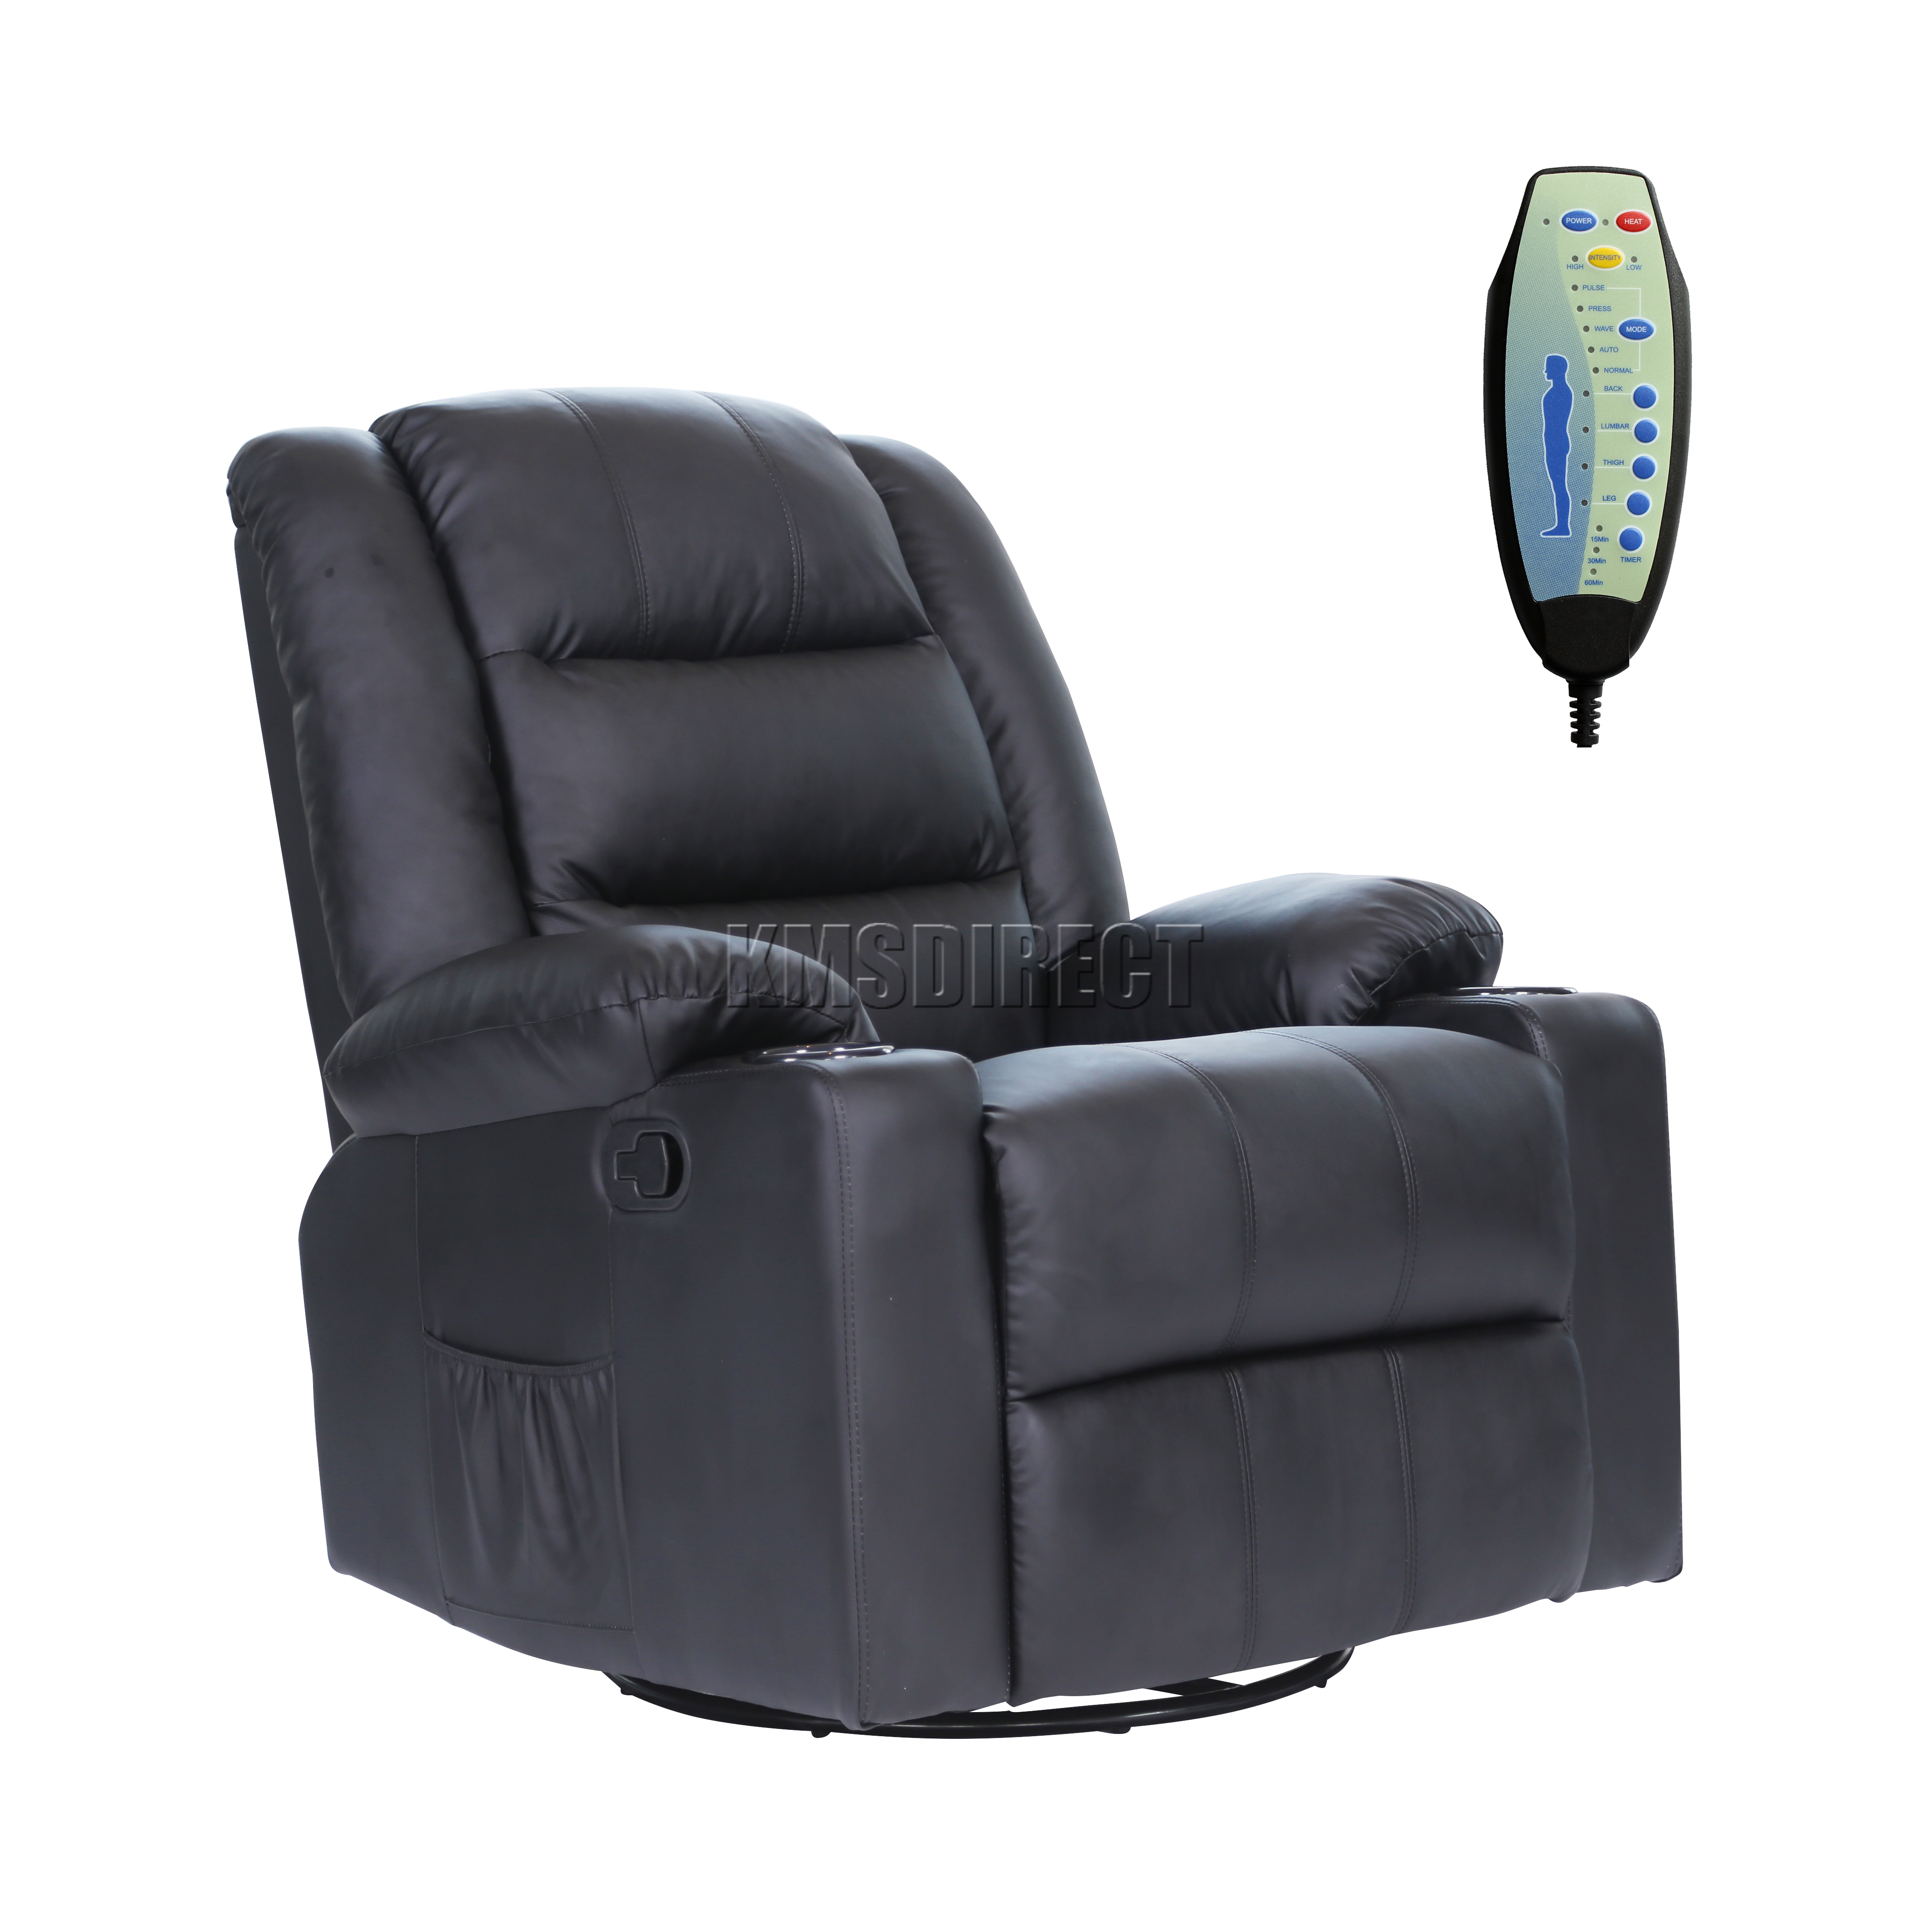 Foxhunter Leather Massage Cinema Recliner Sofa Chair Swivel Rocking Mls 04 Black Ebay